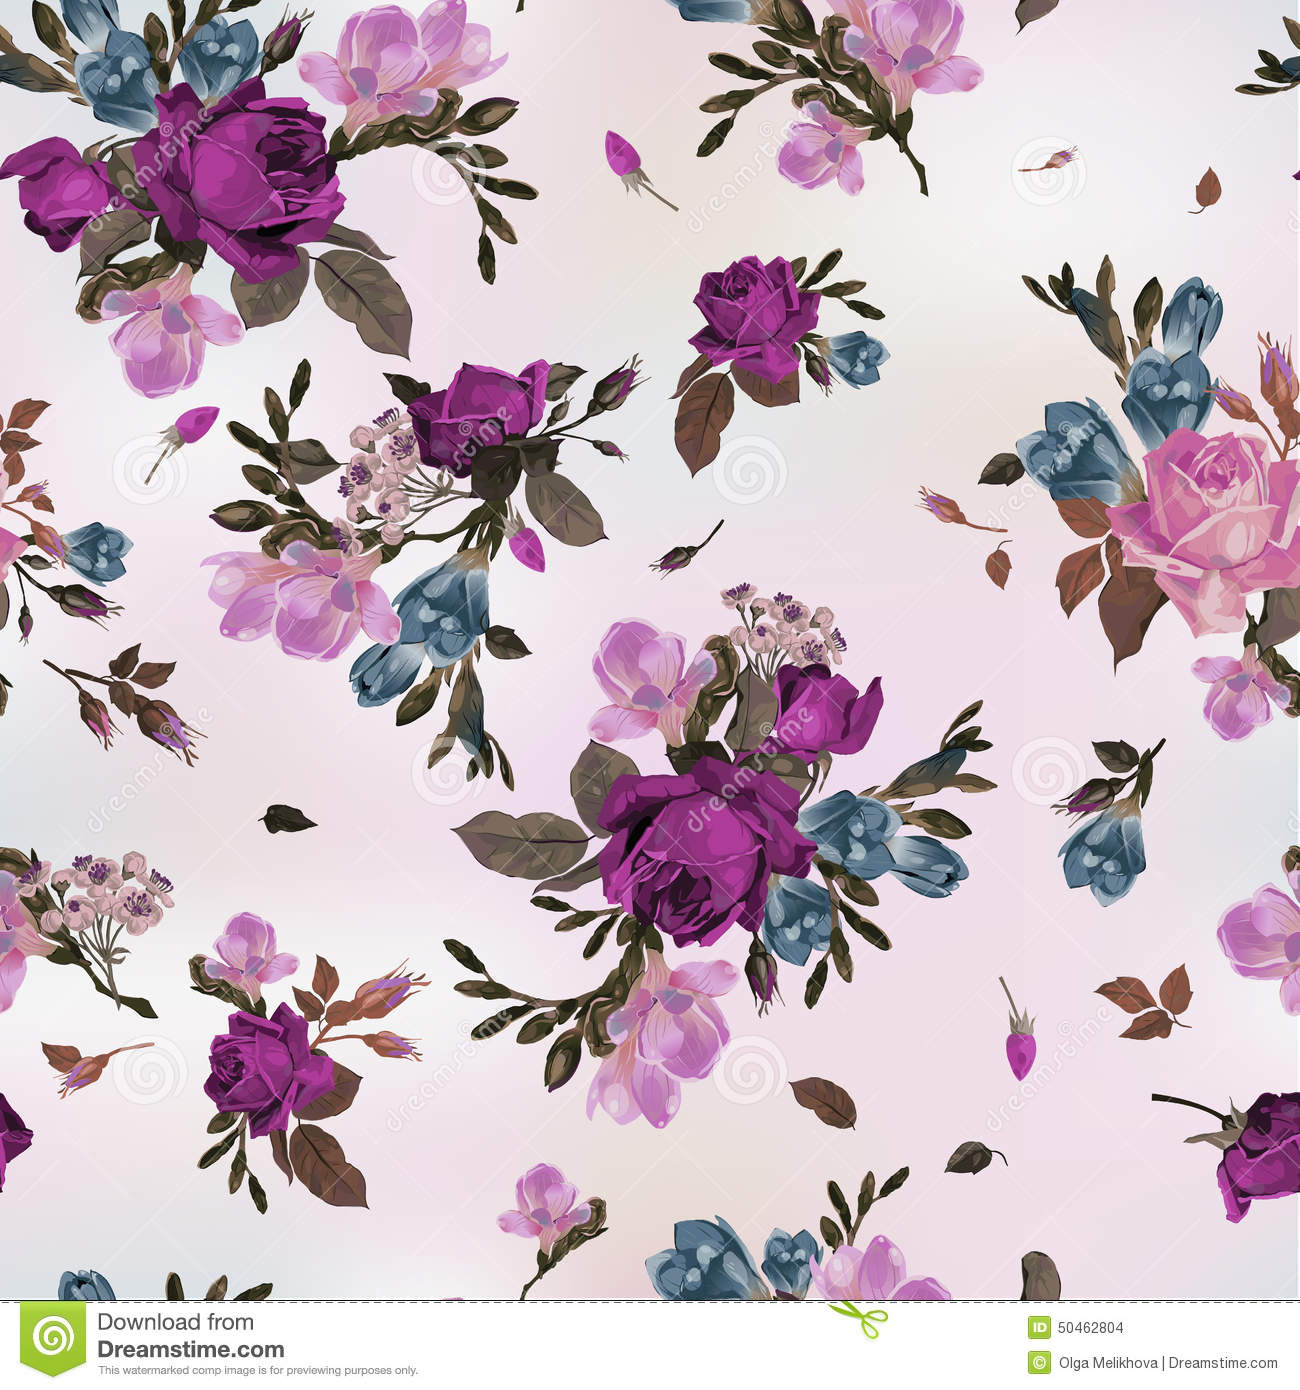 Seamless pink floral pattern - photo#54